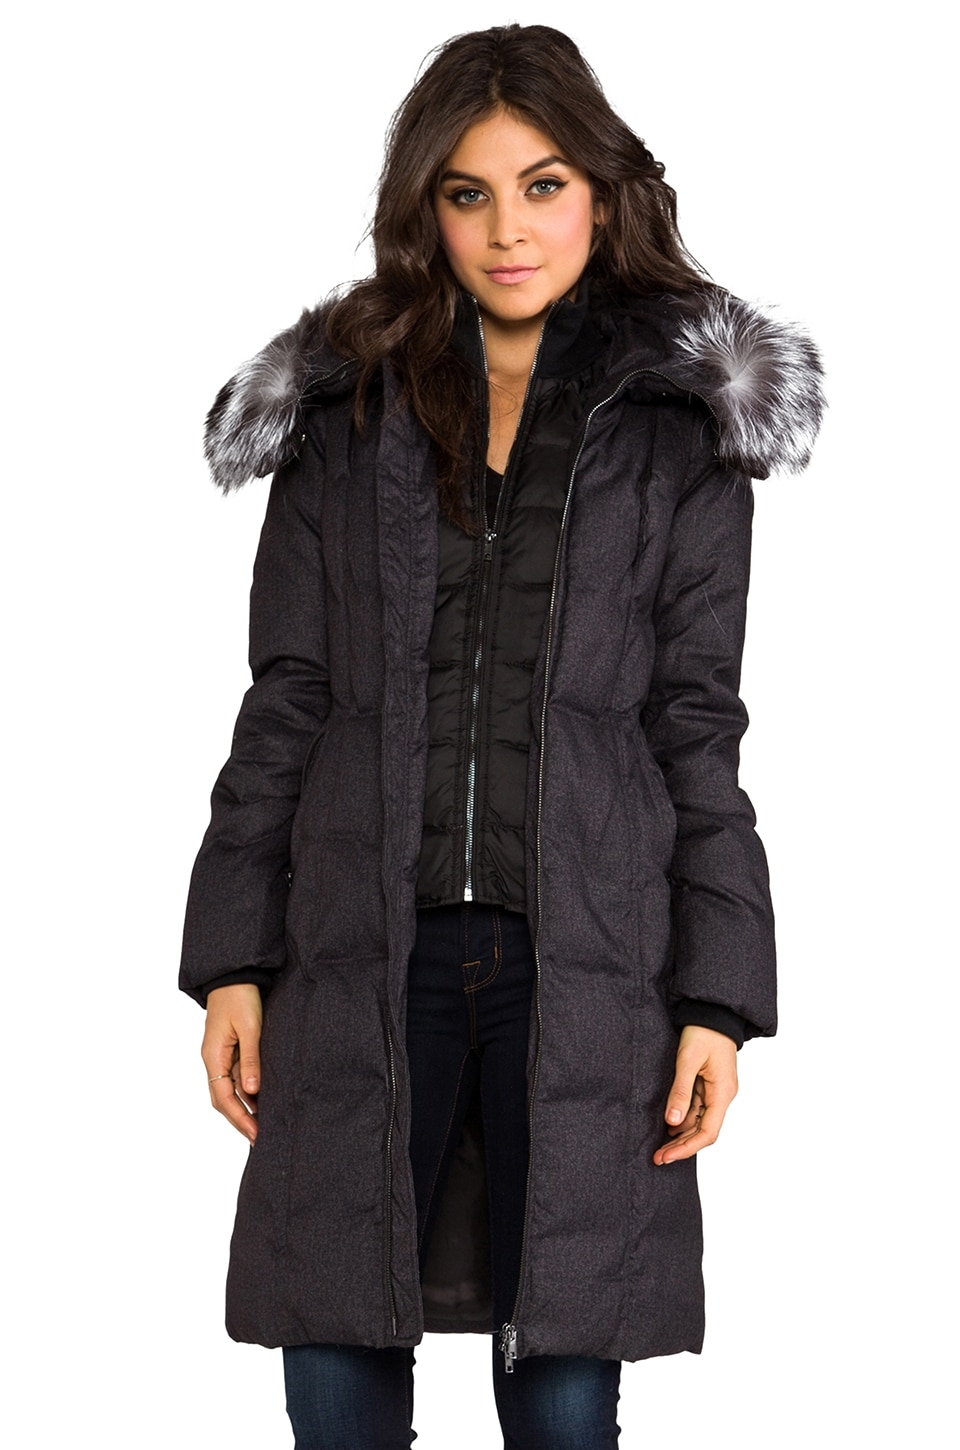 Soia & Kyo Liv Down Coat with Removable Fur Hood in Grey | REVOLVE